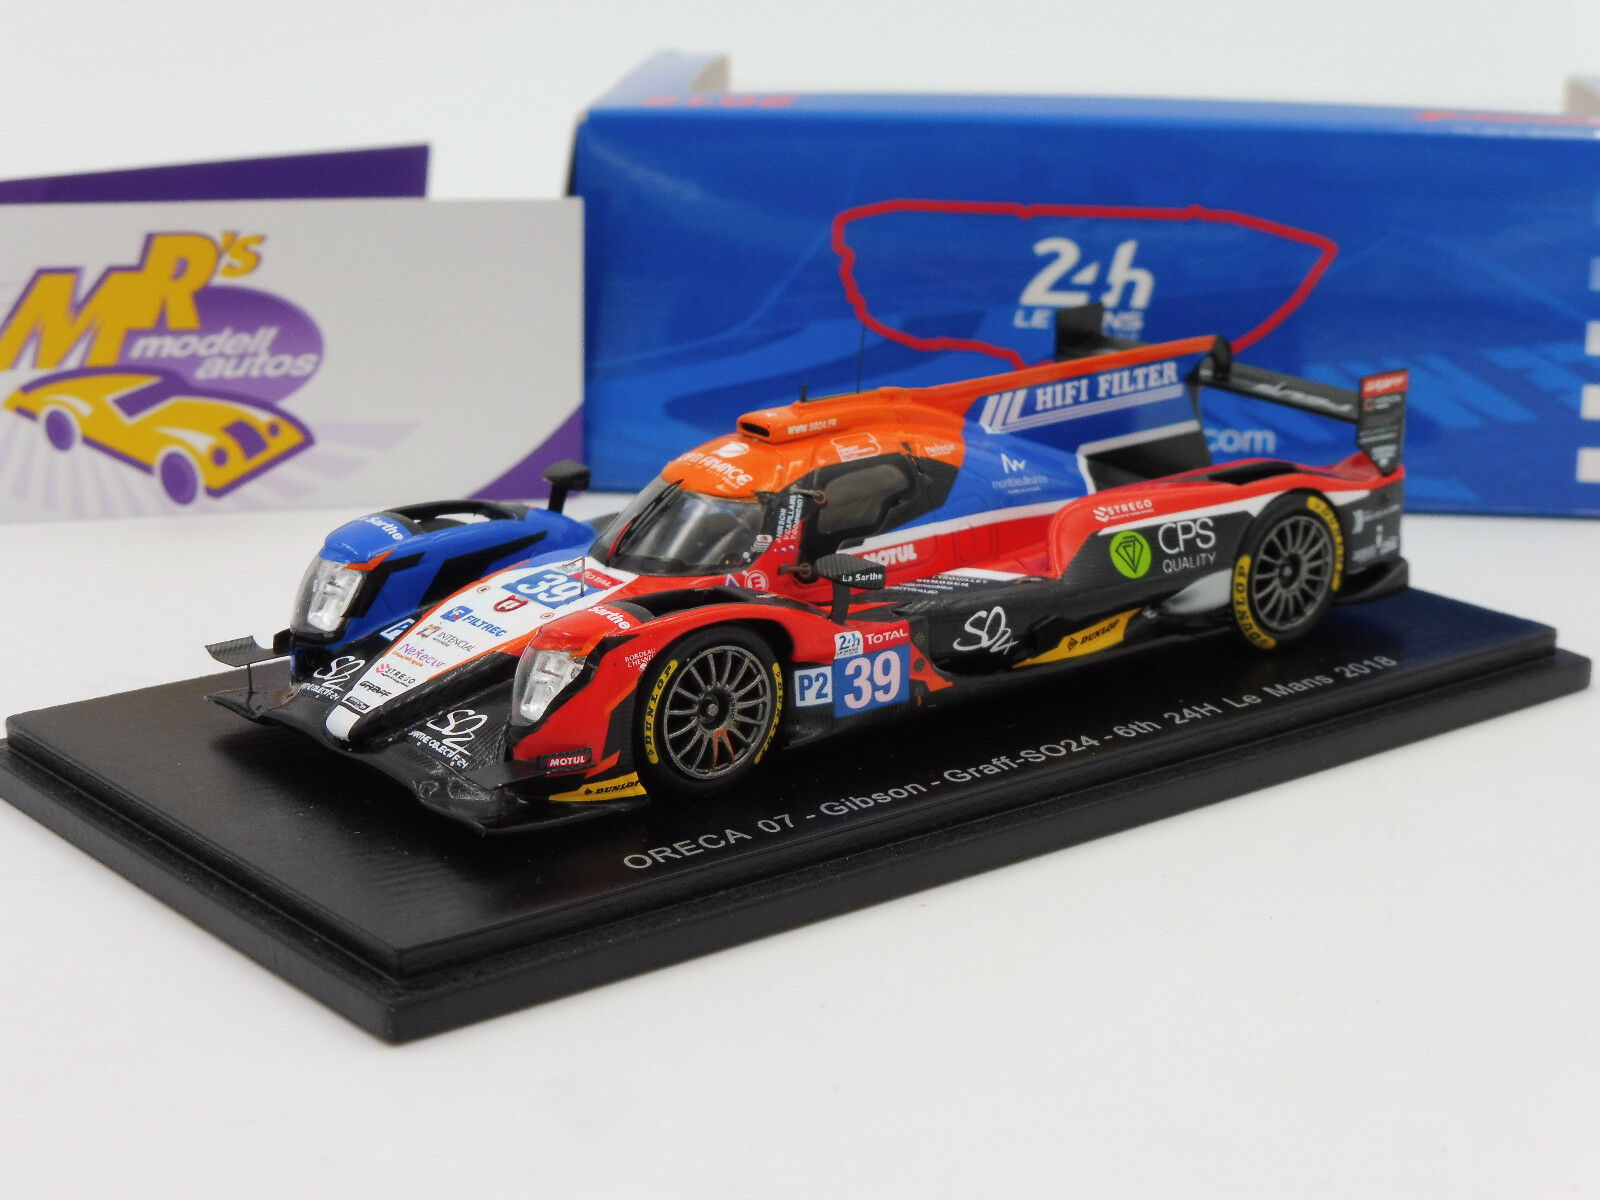 SPARK s7024   ORECA  07-Gibson No. 39 6th 24 H LeMans 2018  GRAFF-so24  1 43 NEUF  magasin d'usine